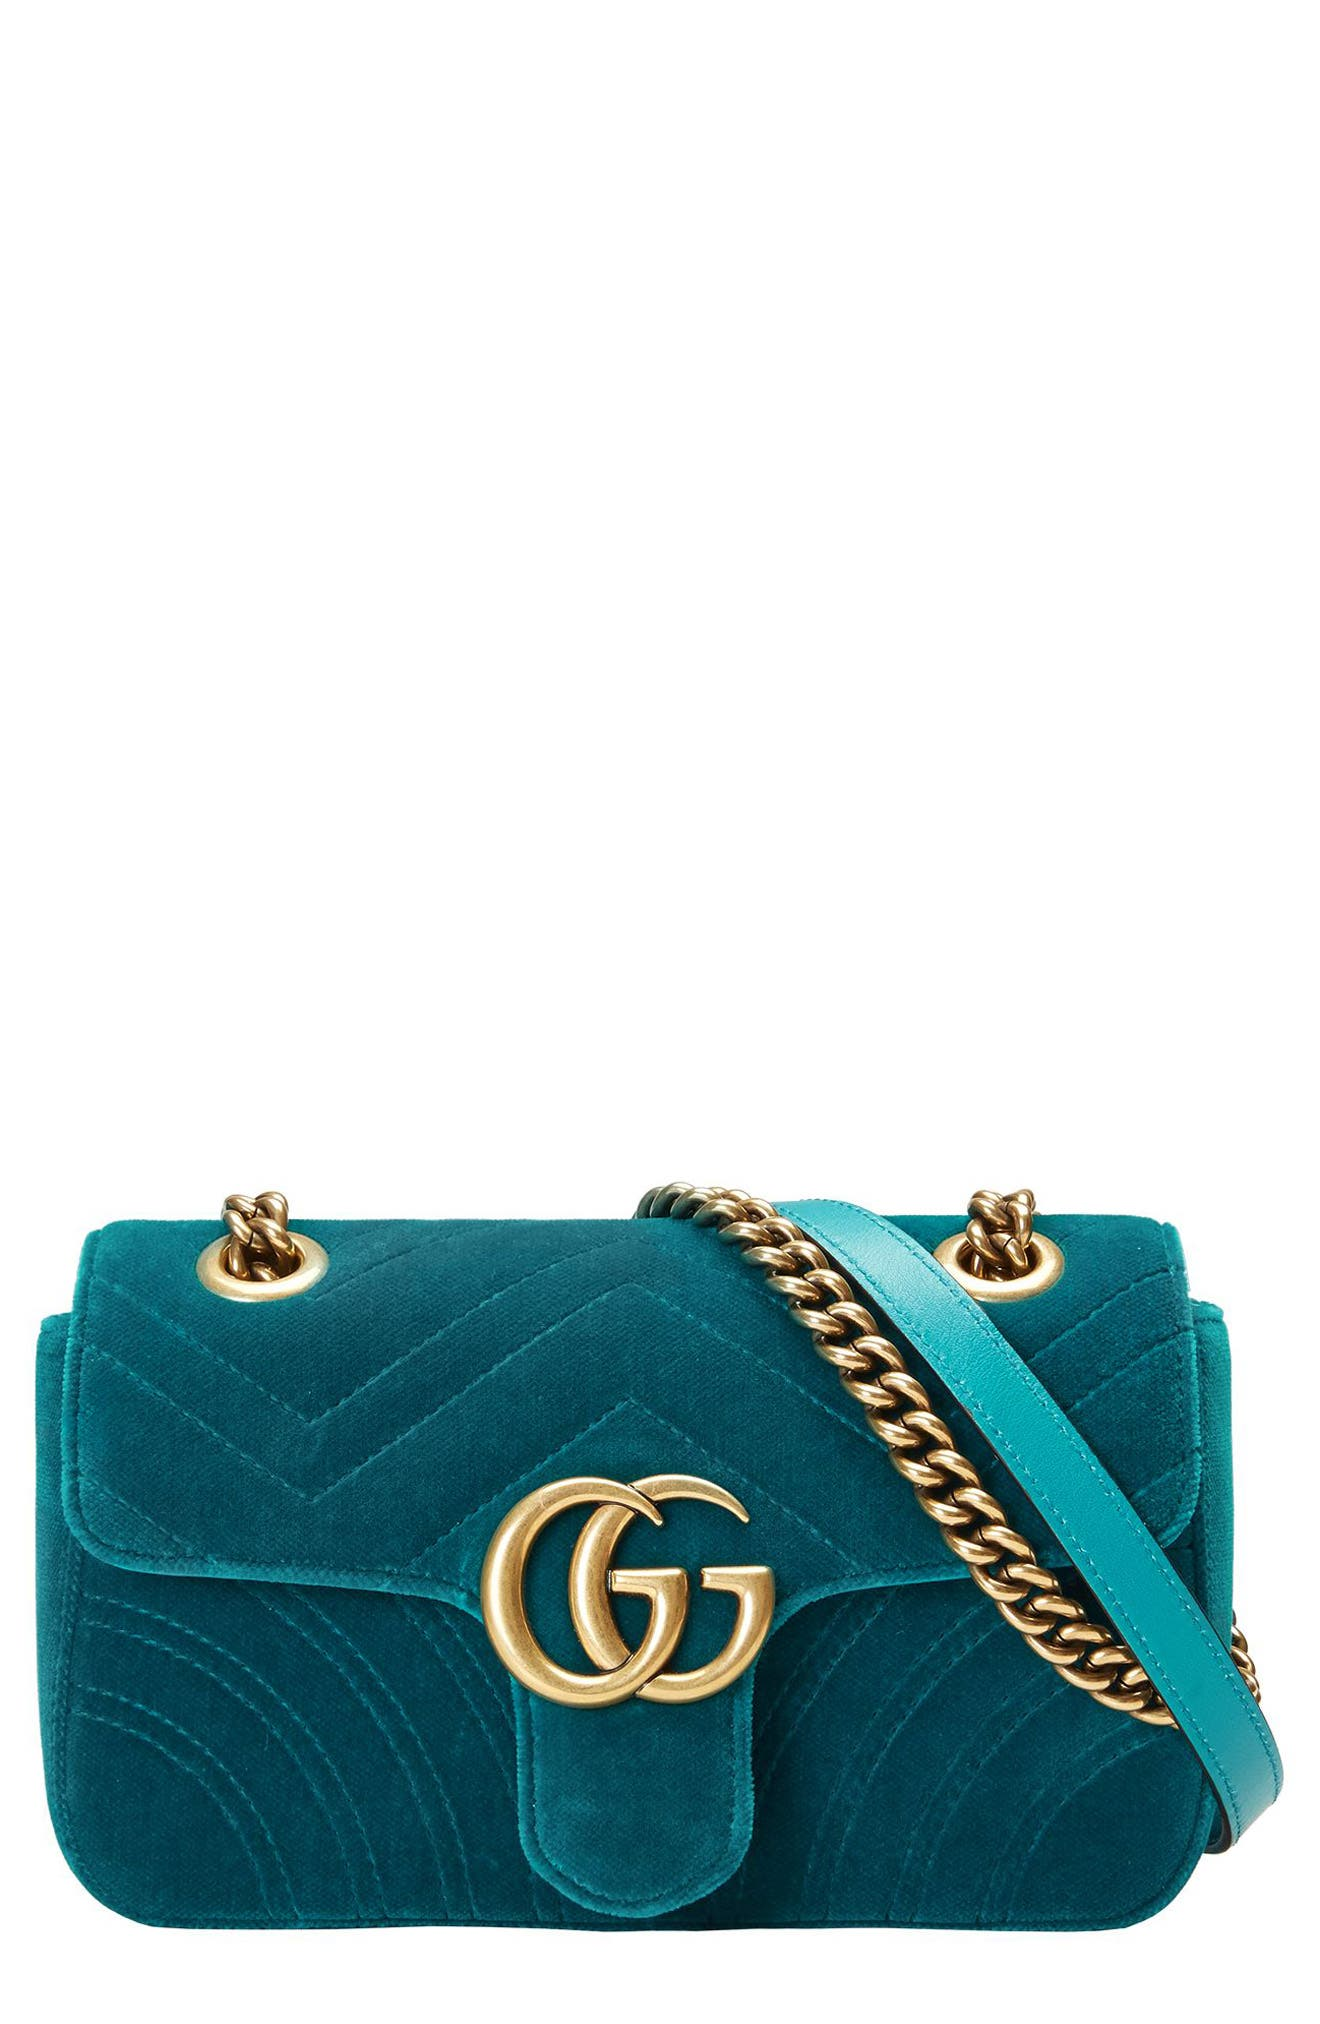 Gucci Small GG Marmont 2.0 Matelassé Velvet Shoulder Bag